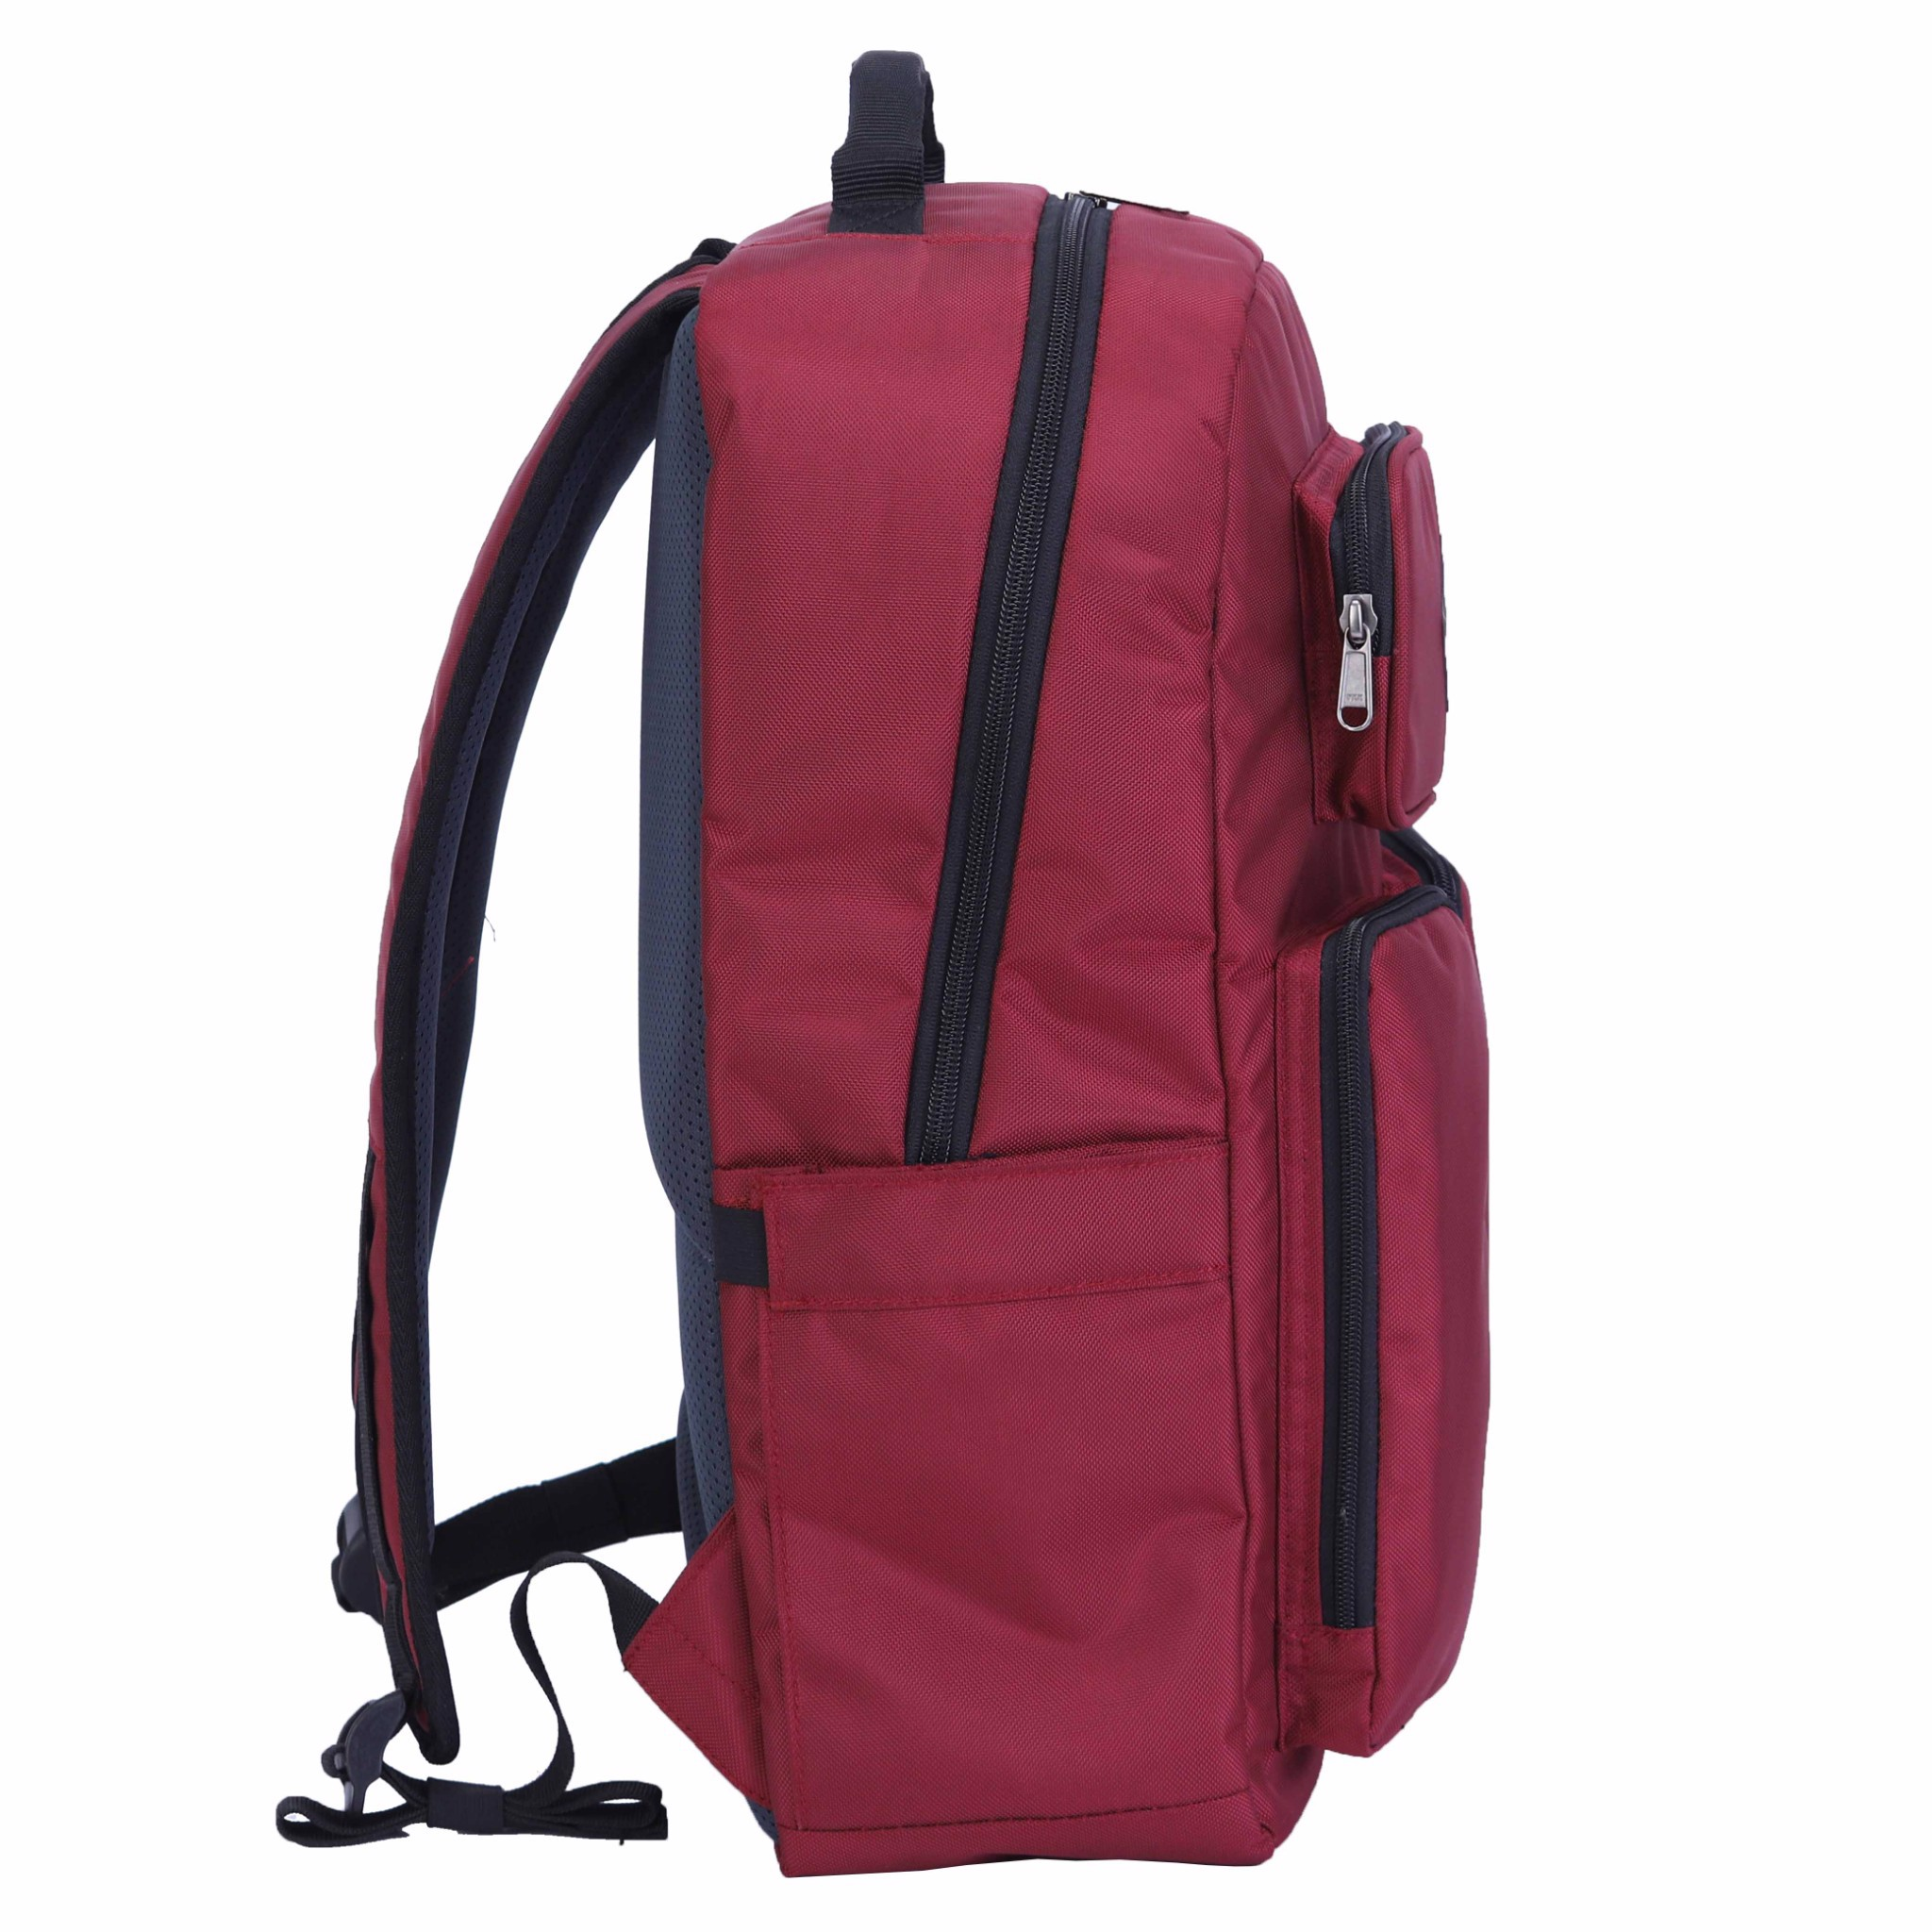 Balo UMO HUNKY D.Red BackPack - Balo Laptop Cao Cấp